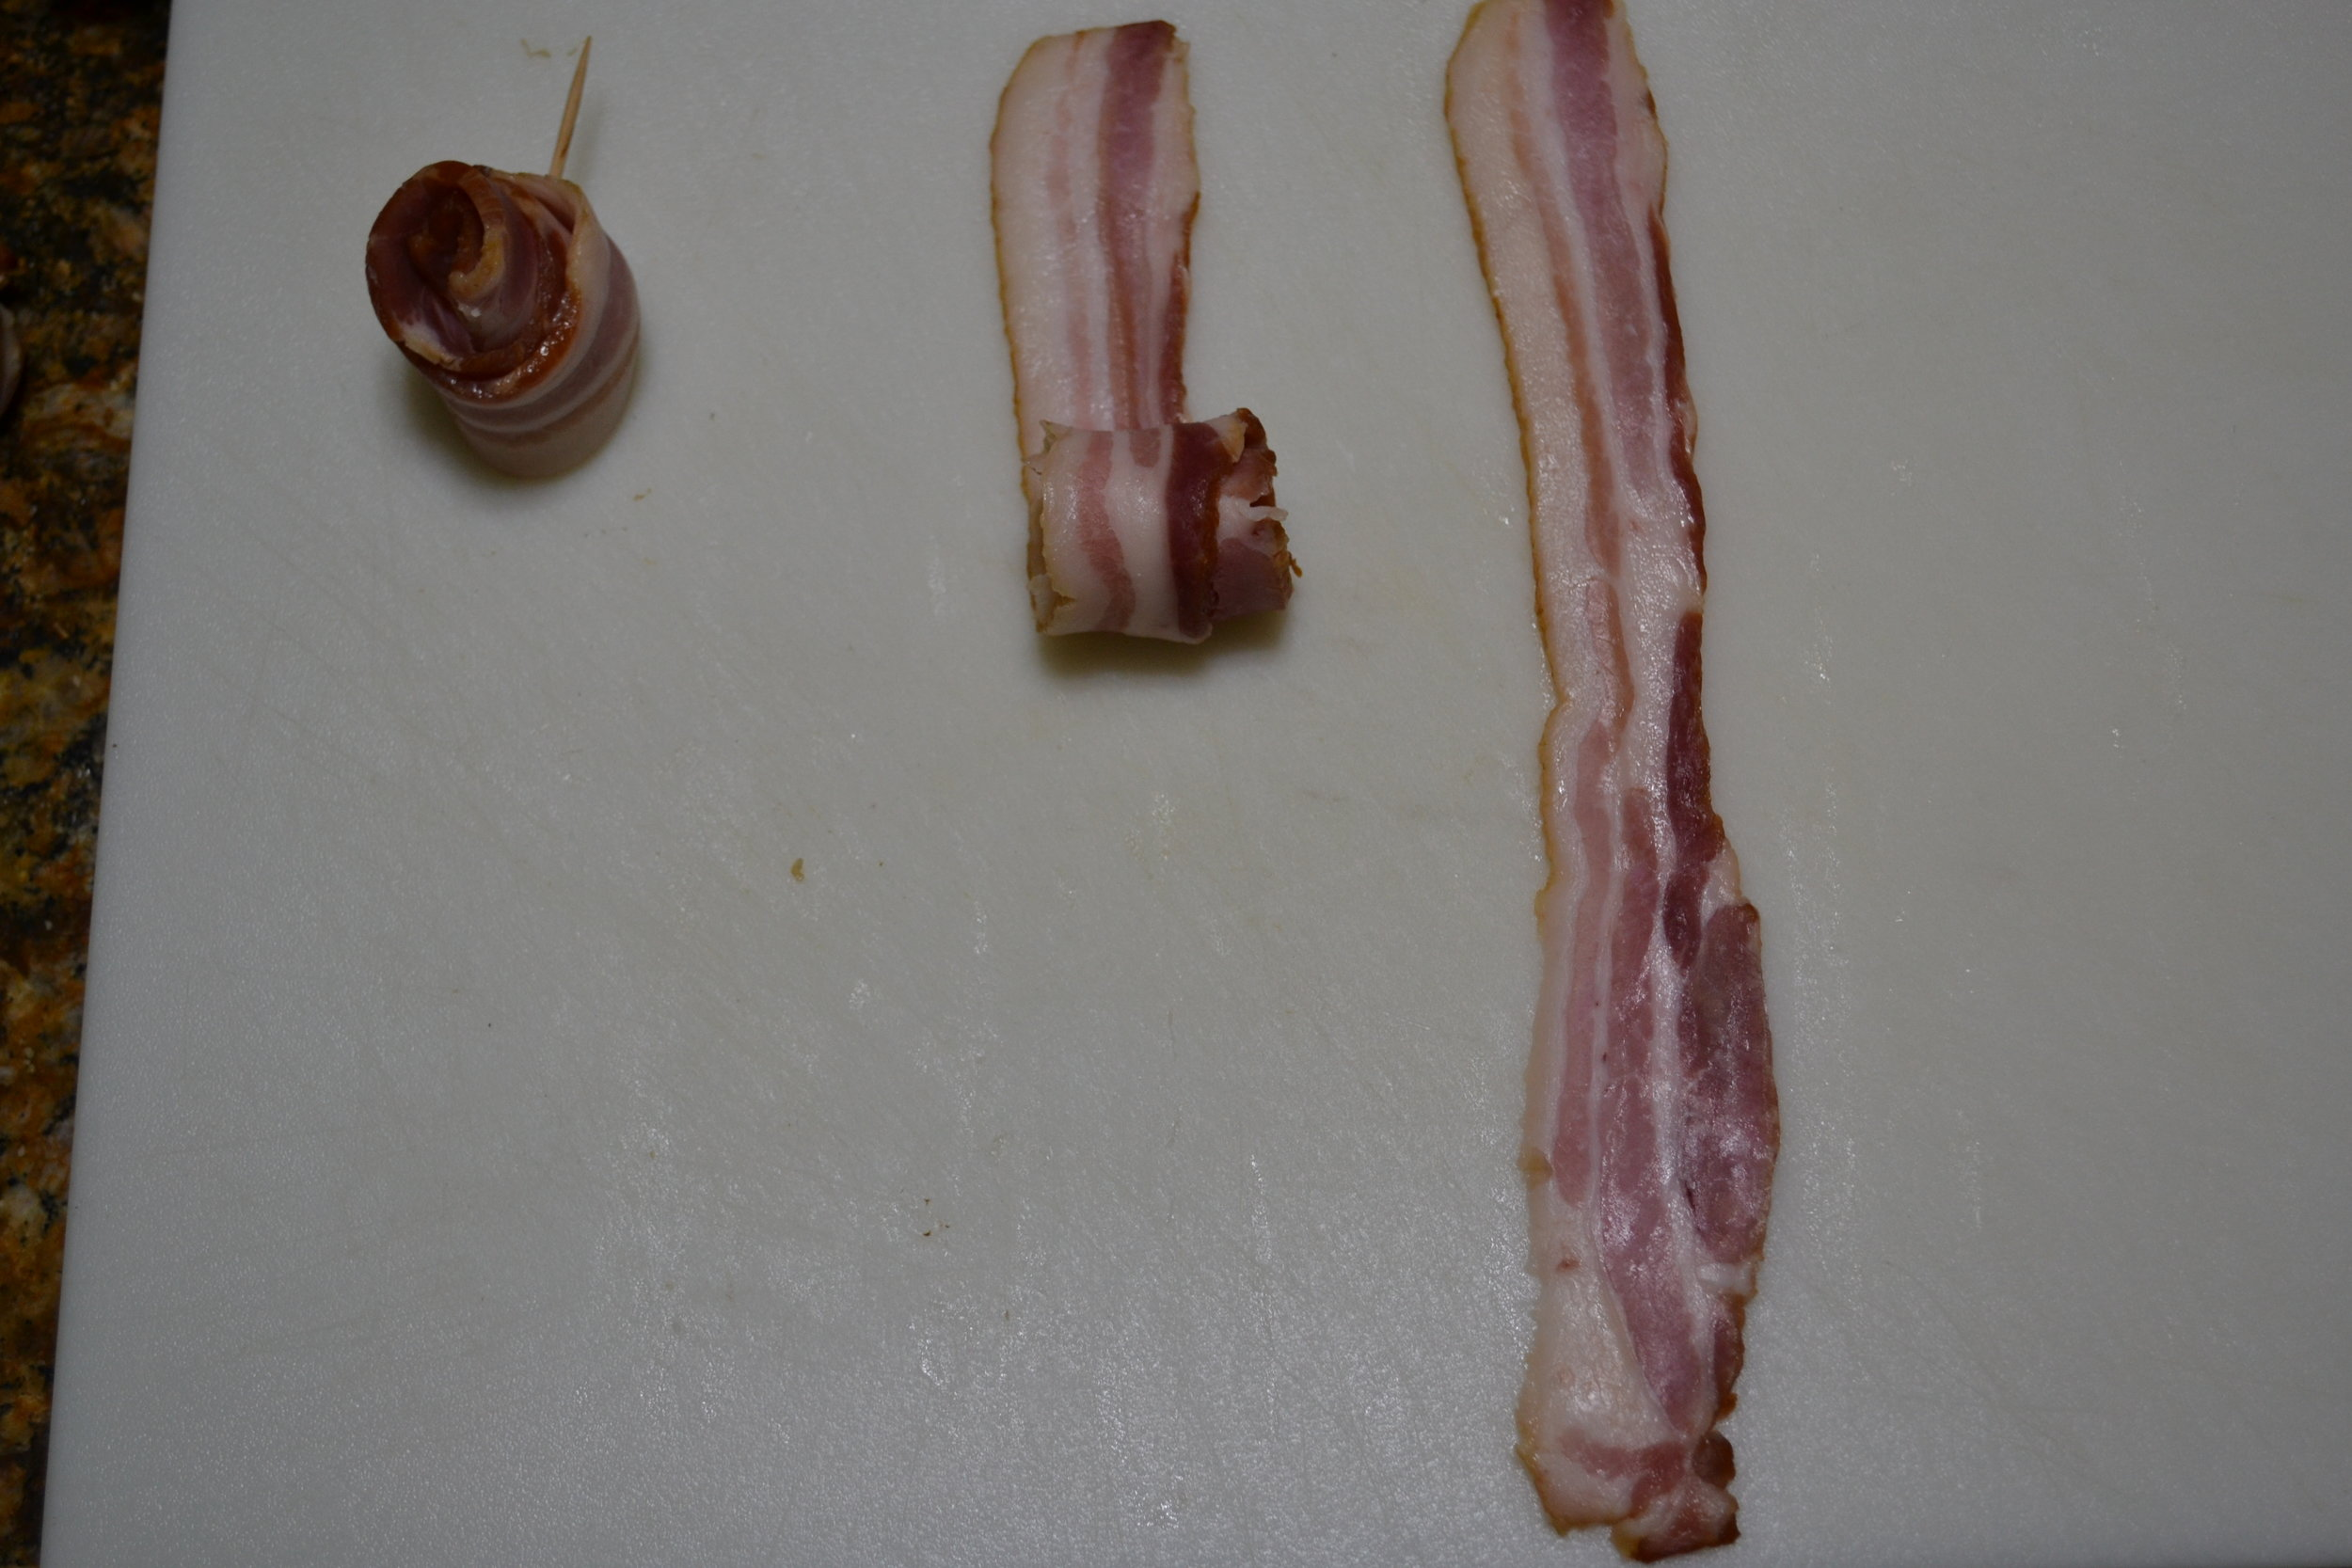 Be sure to roll but not in a real tight roll.  You may need to do this a few times to get what you feel looks like a rose.      After you have mastered this and have a bacon rose the way you want it, you need to place a toothpick thru the slice to hold it in place.  Next, place in an aluminum muffin pan that you punched  3 - 4 holes in the bottom.  These holes will allow the bacon grease to drain out as it cooks.